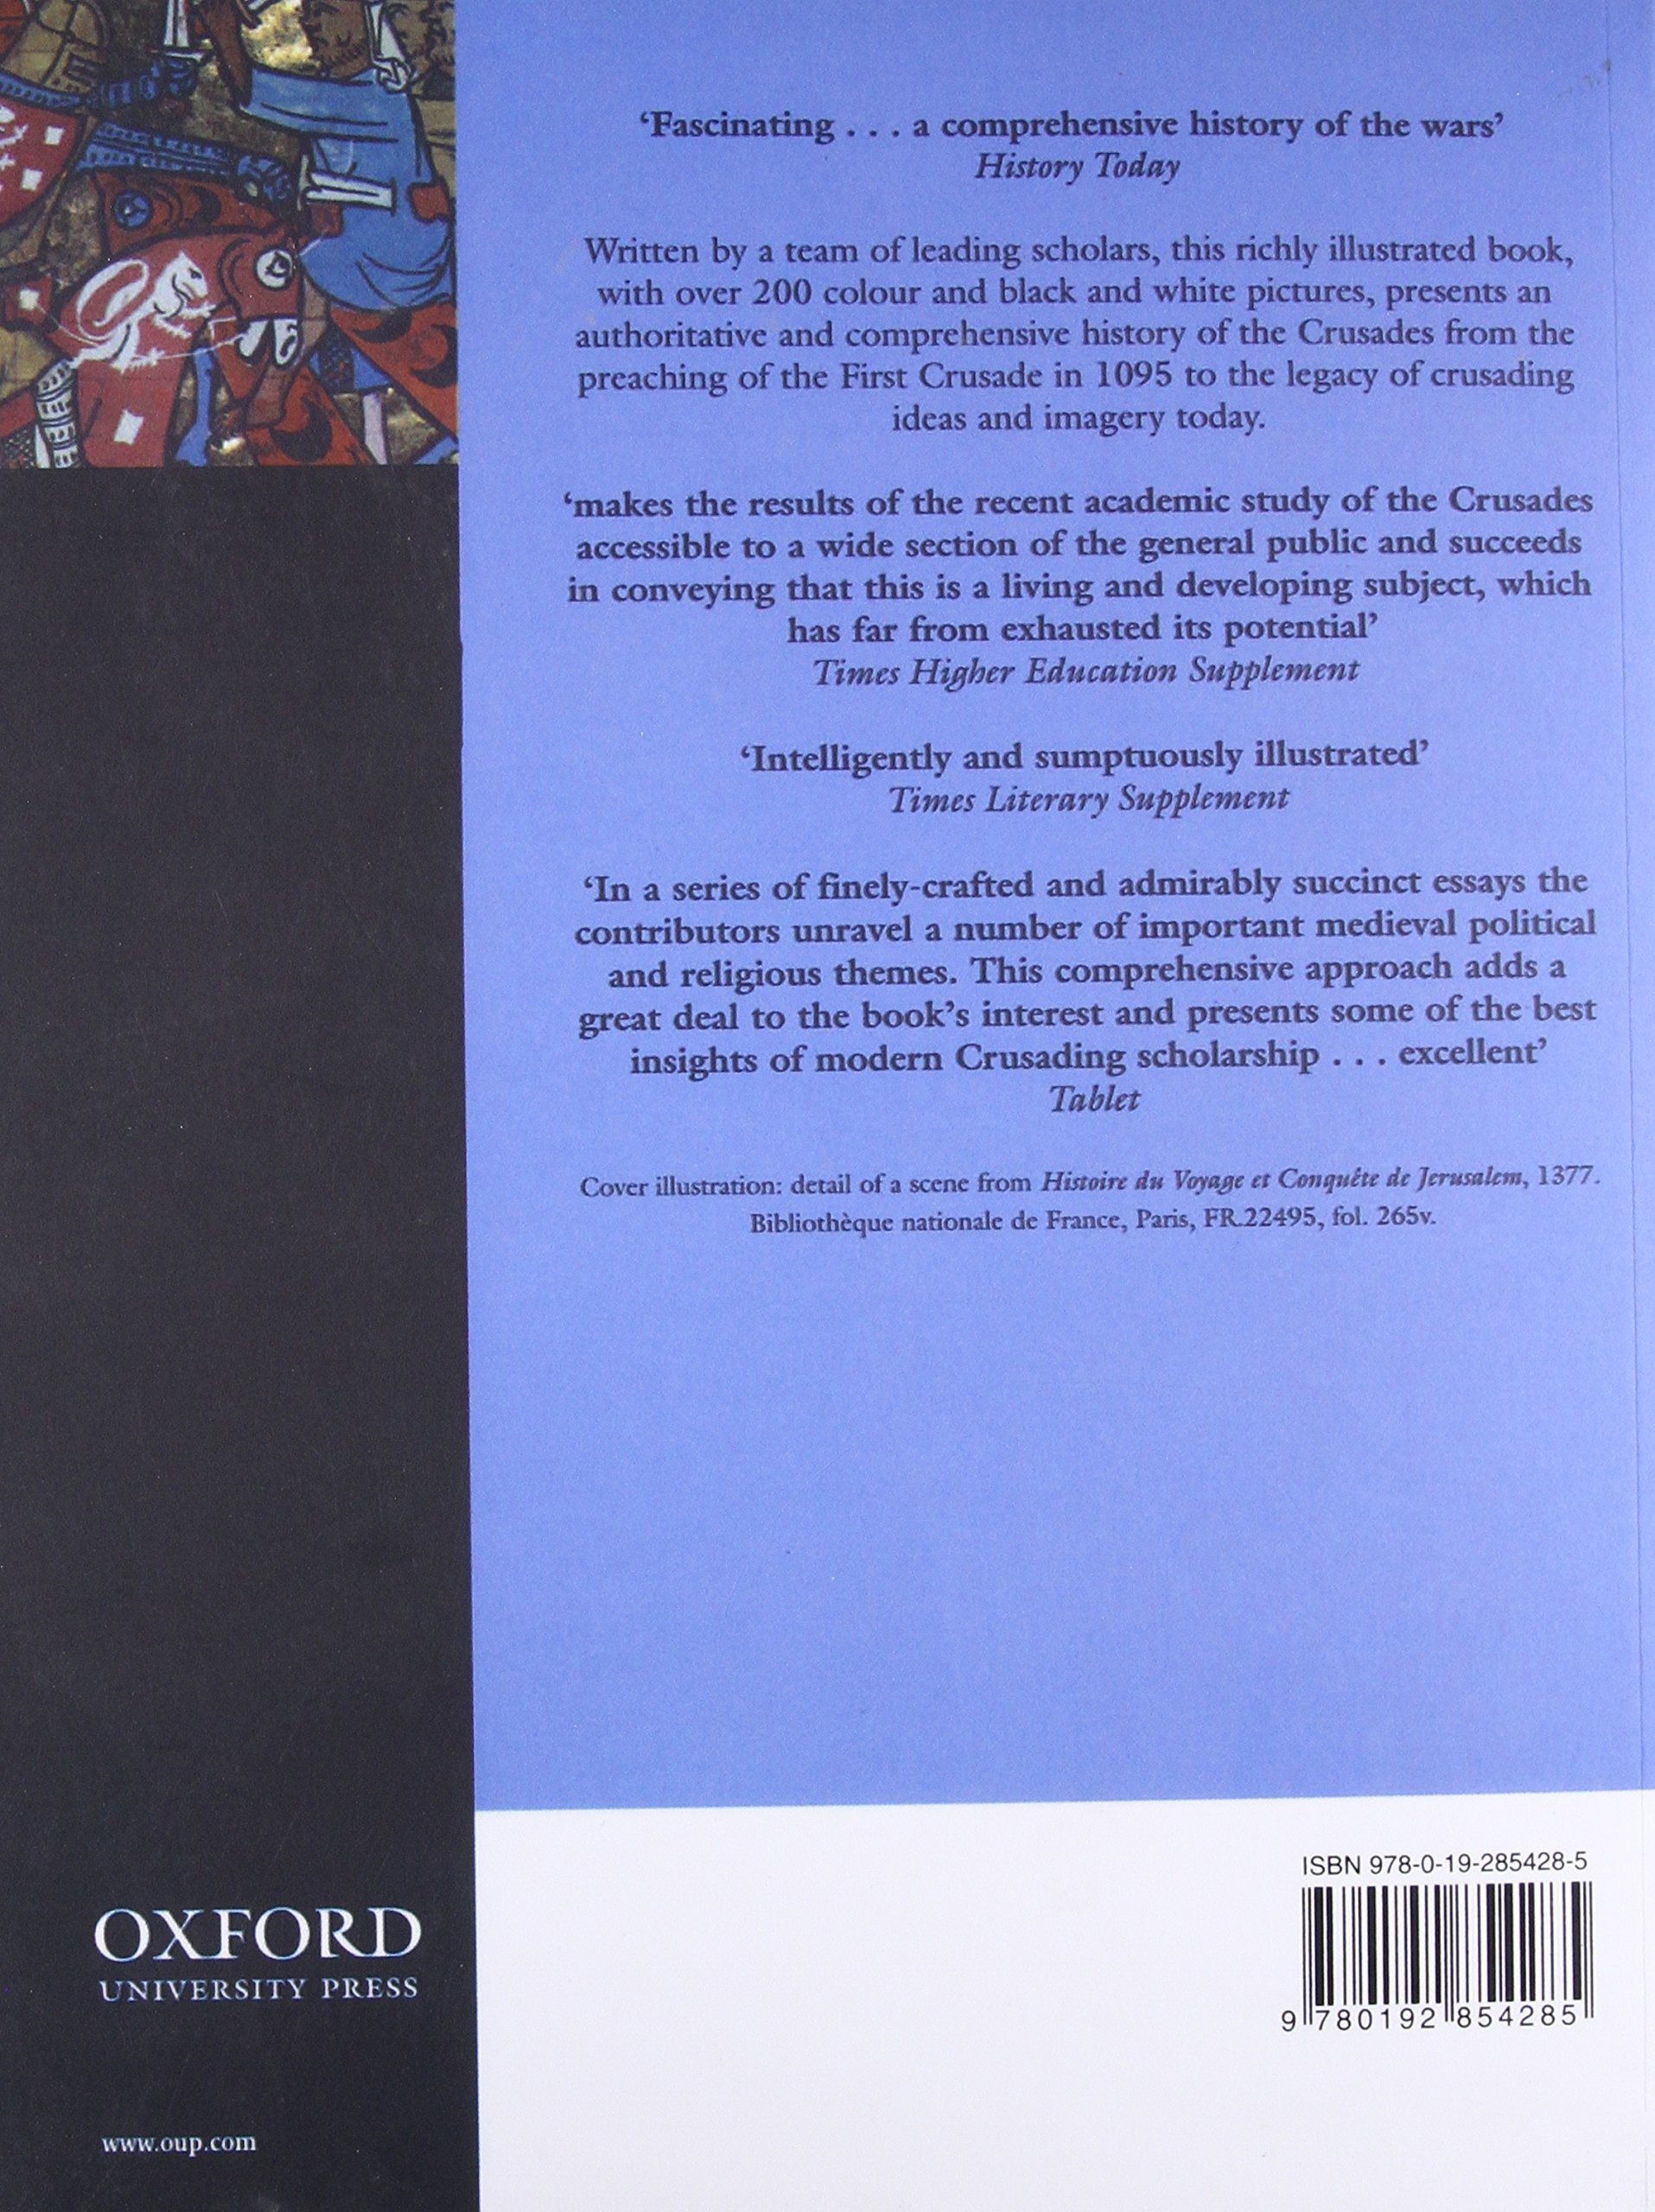 the oxford illustrated history of the crusades jonathan riley  the oxford illustrated history of the crusades jonathan riley smith 9780192854285 com books